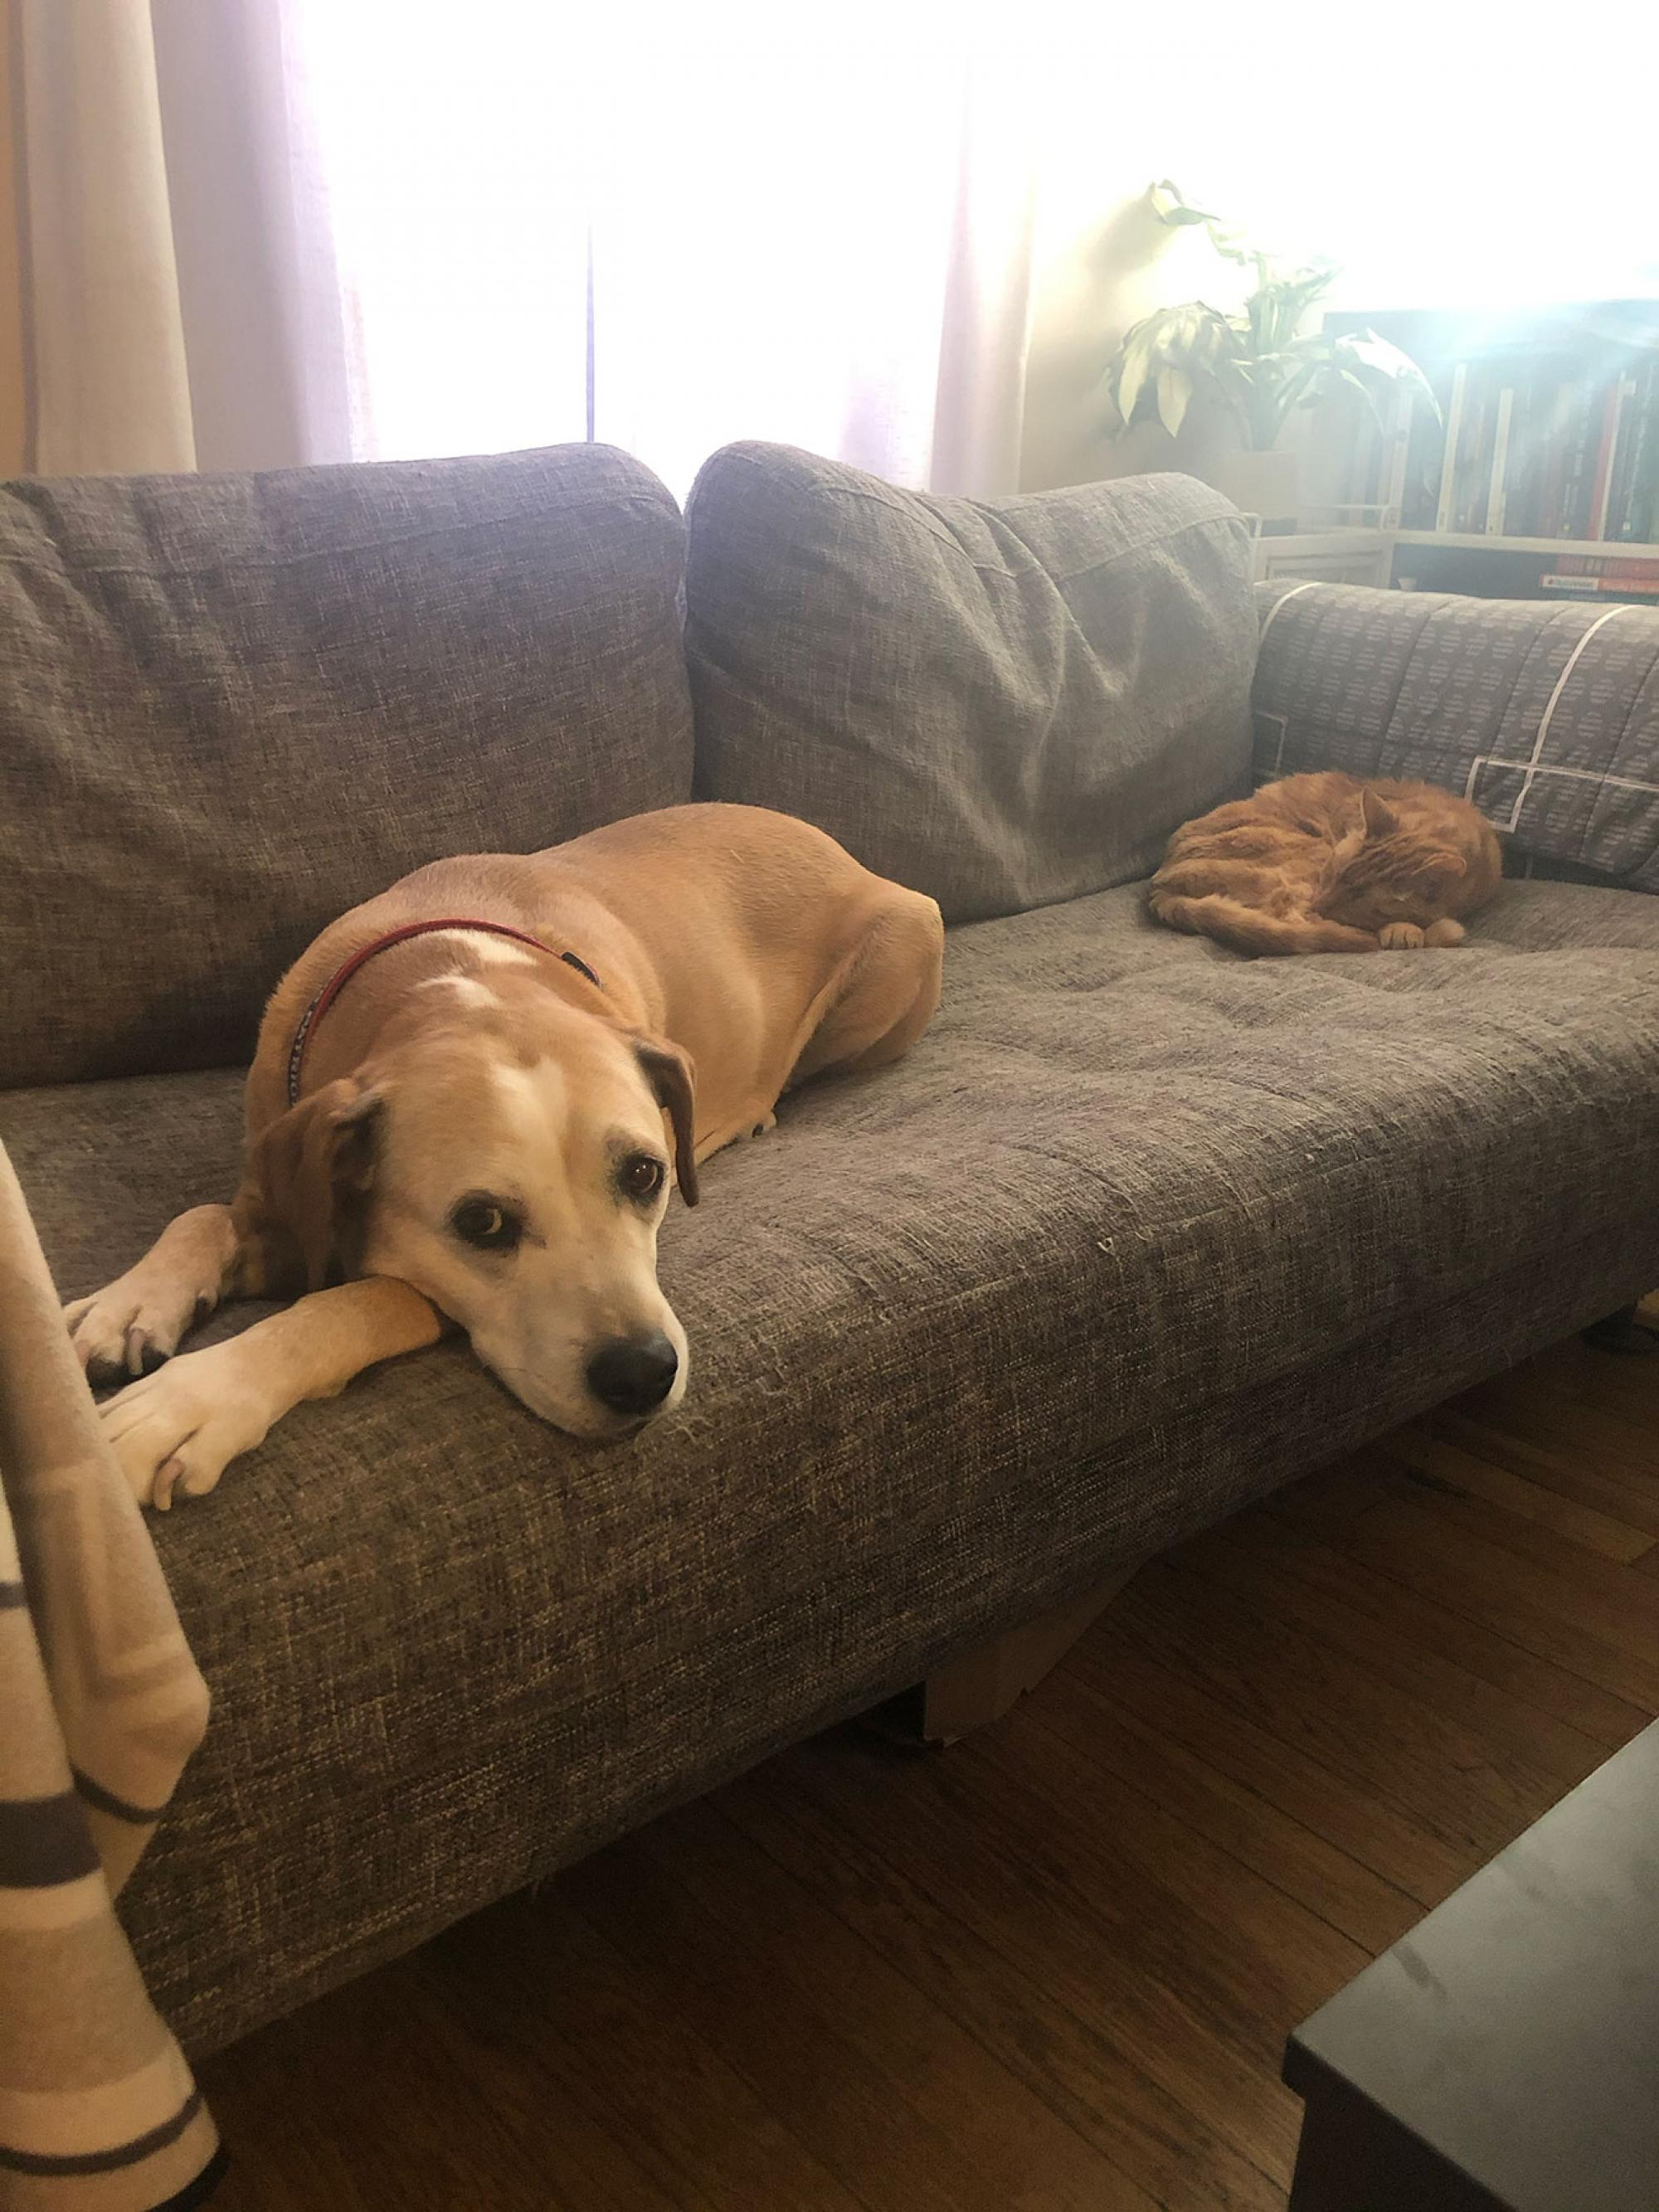 My furry friends enjoying their lunch break . They follow a strict schedule consisting mostly of snacks, naps and cuddles. The pup is Rey and the kitty is Jetson. – Kayleigh Kozyra, doctoral student and graduate assistant, College of Fine Arts